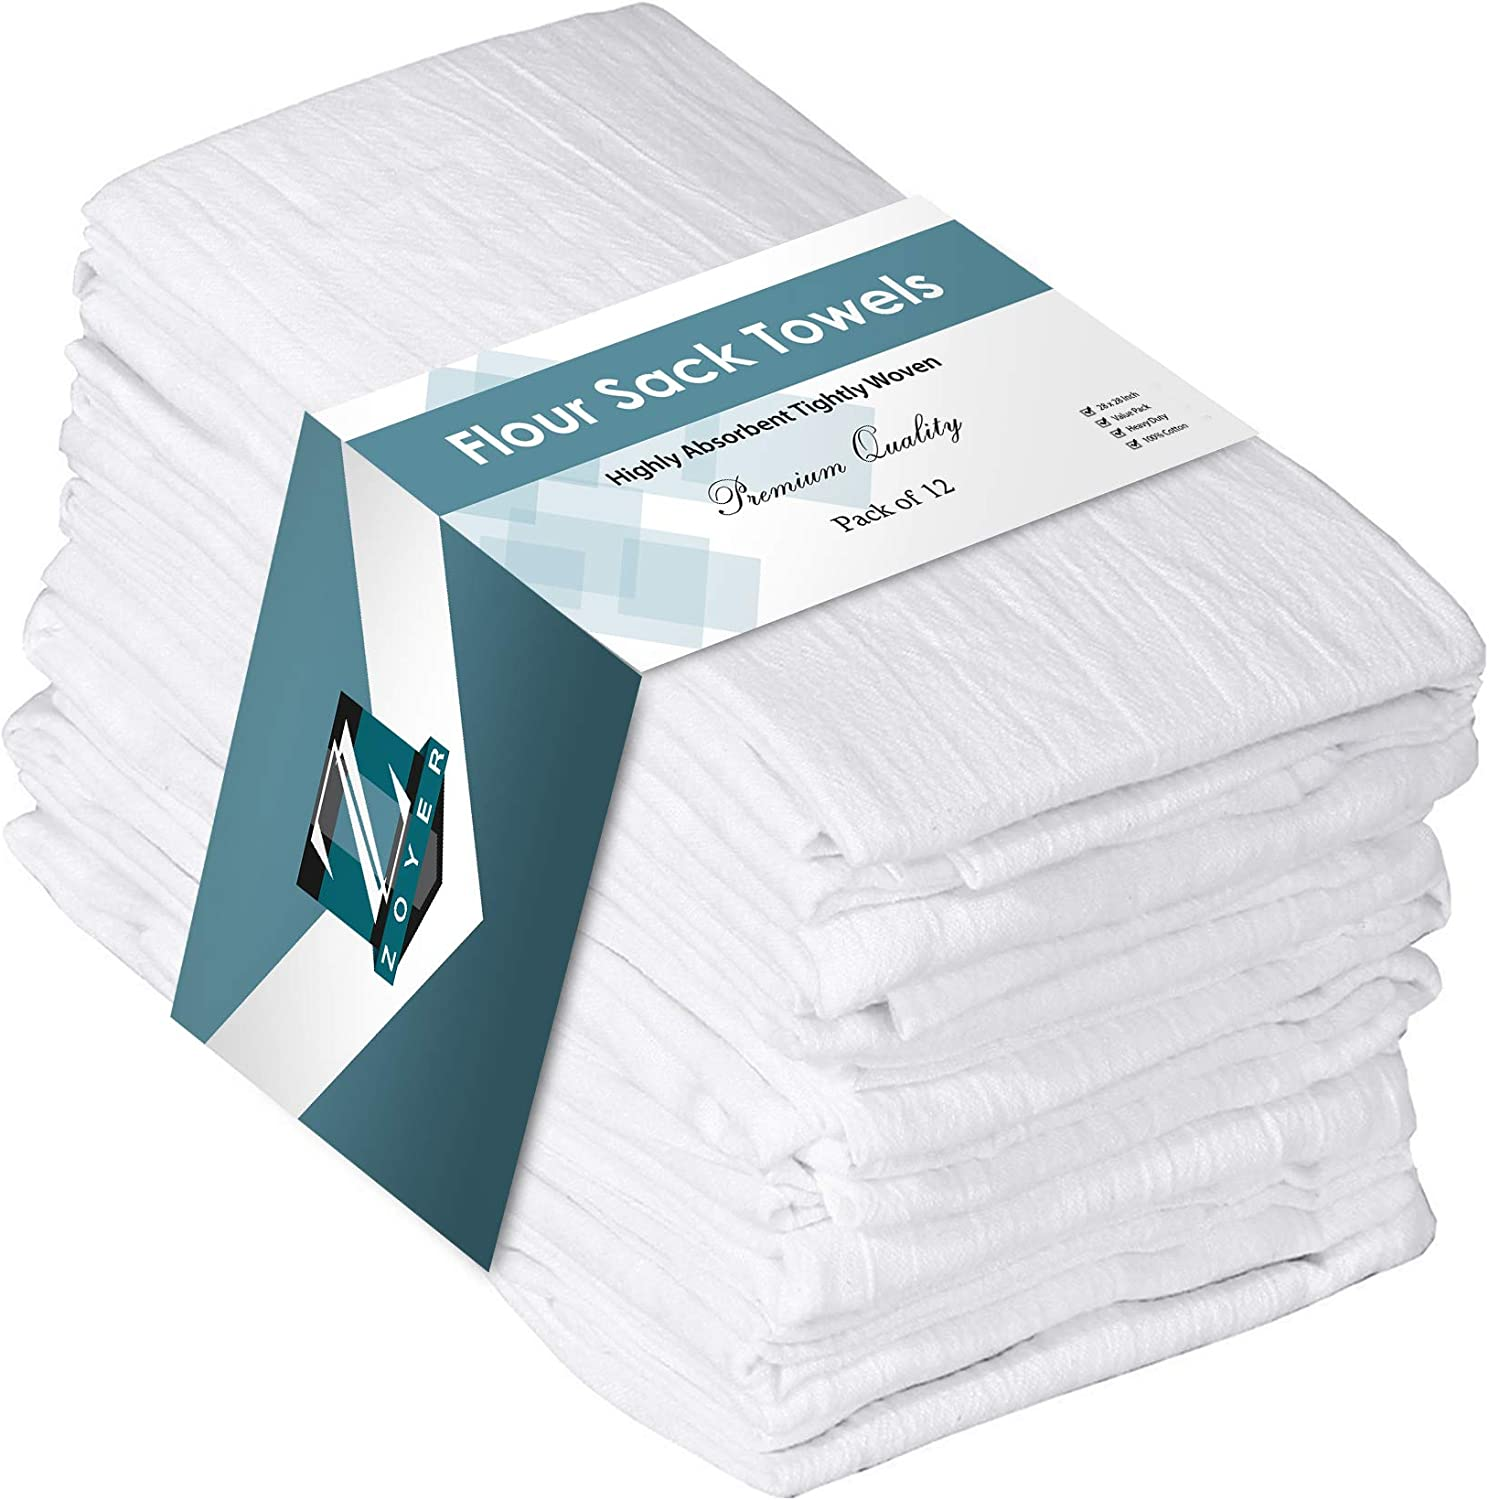 Pack of 12 Flour Sack Towels Cotton Absorbent 28 x 28 Inch Utopia Kitchen